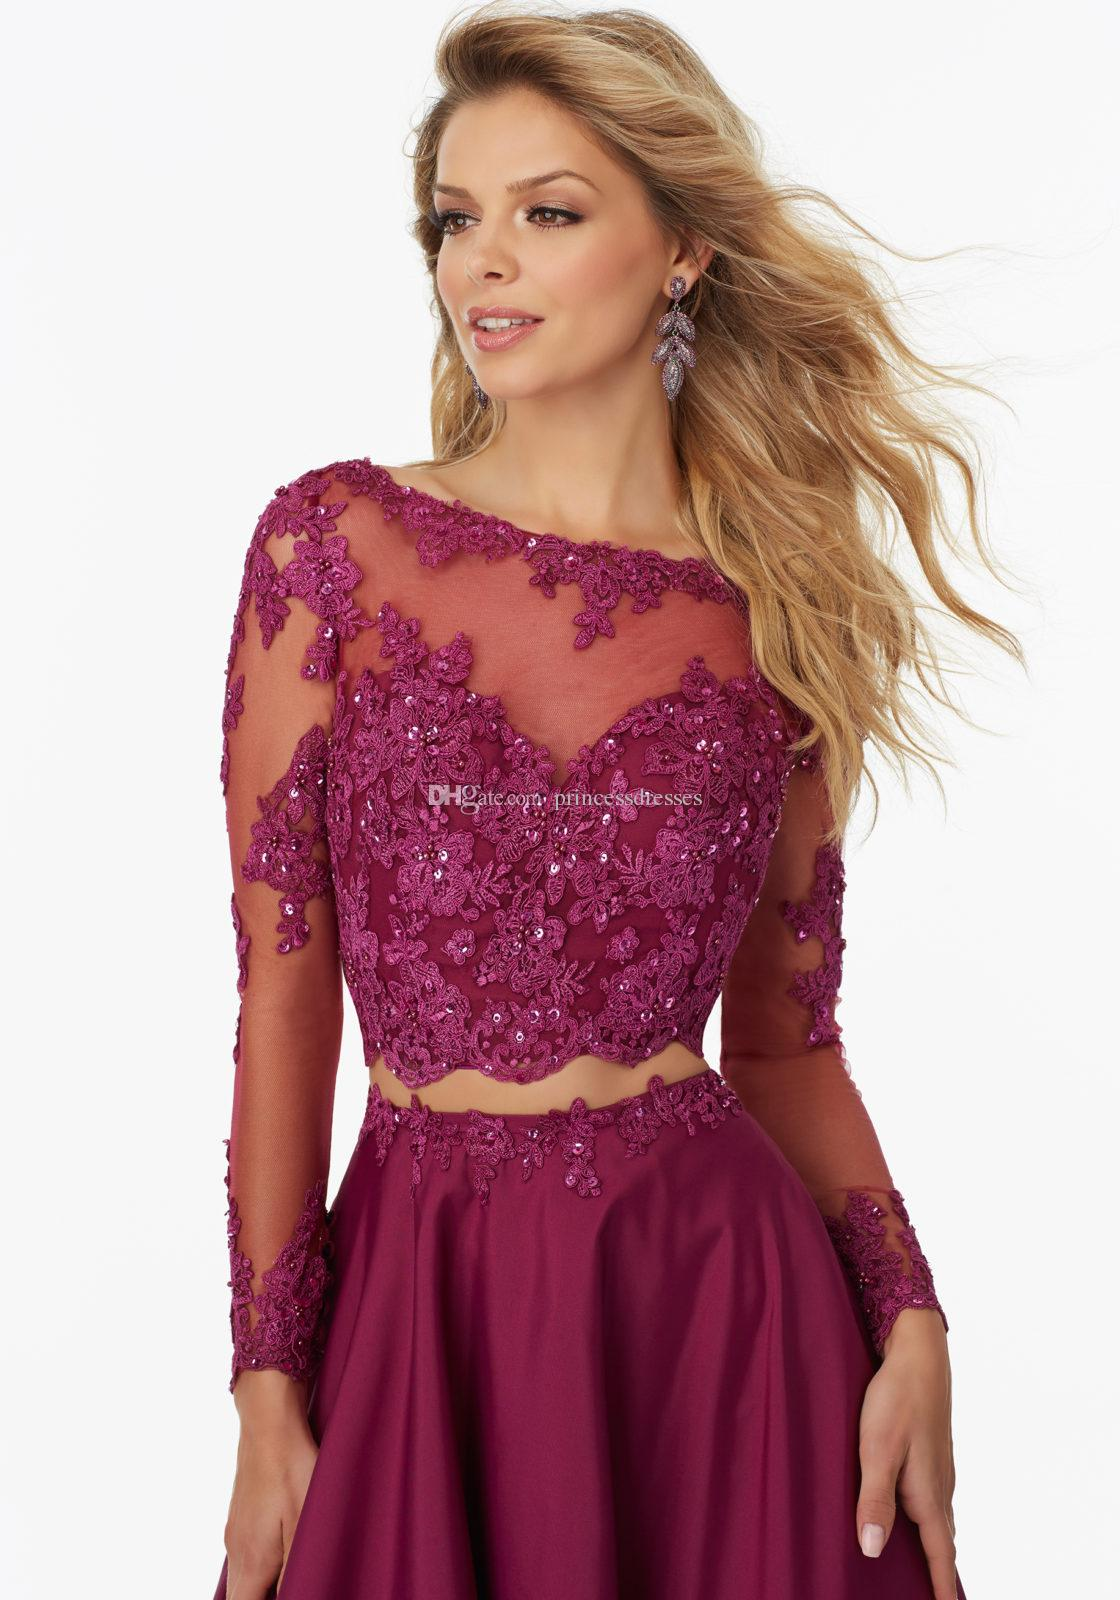 New Fashion Two Pieces Burgundy Lace Evening Dresses Long Sleeve Beaded See Through Back Prom Party Dresses Evening Wear Red Carpet Dresses